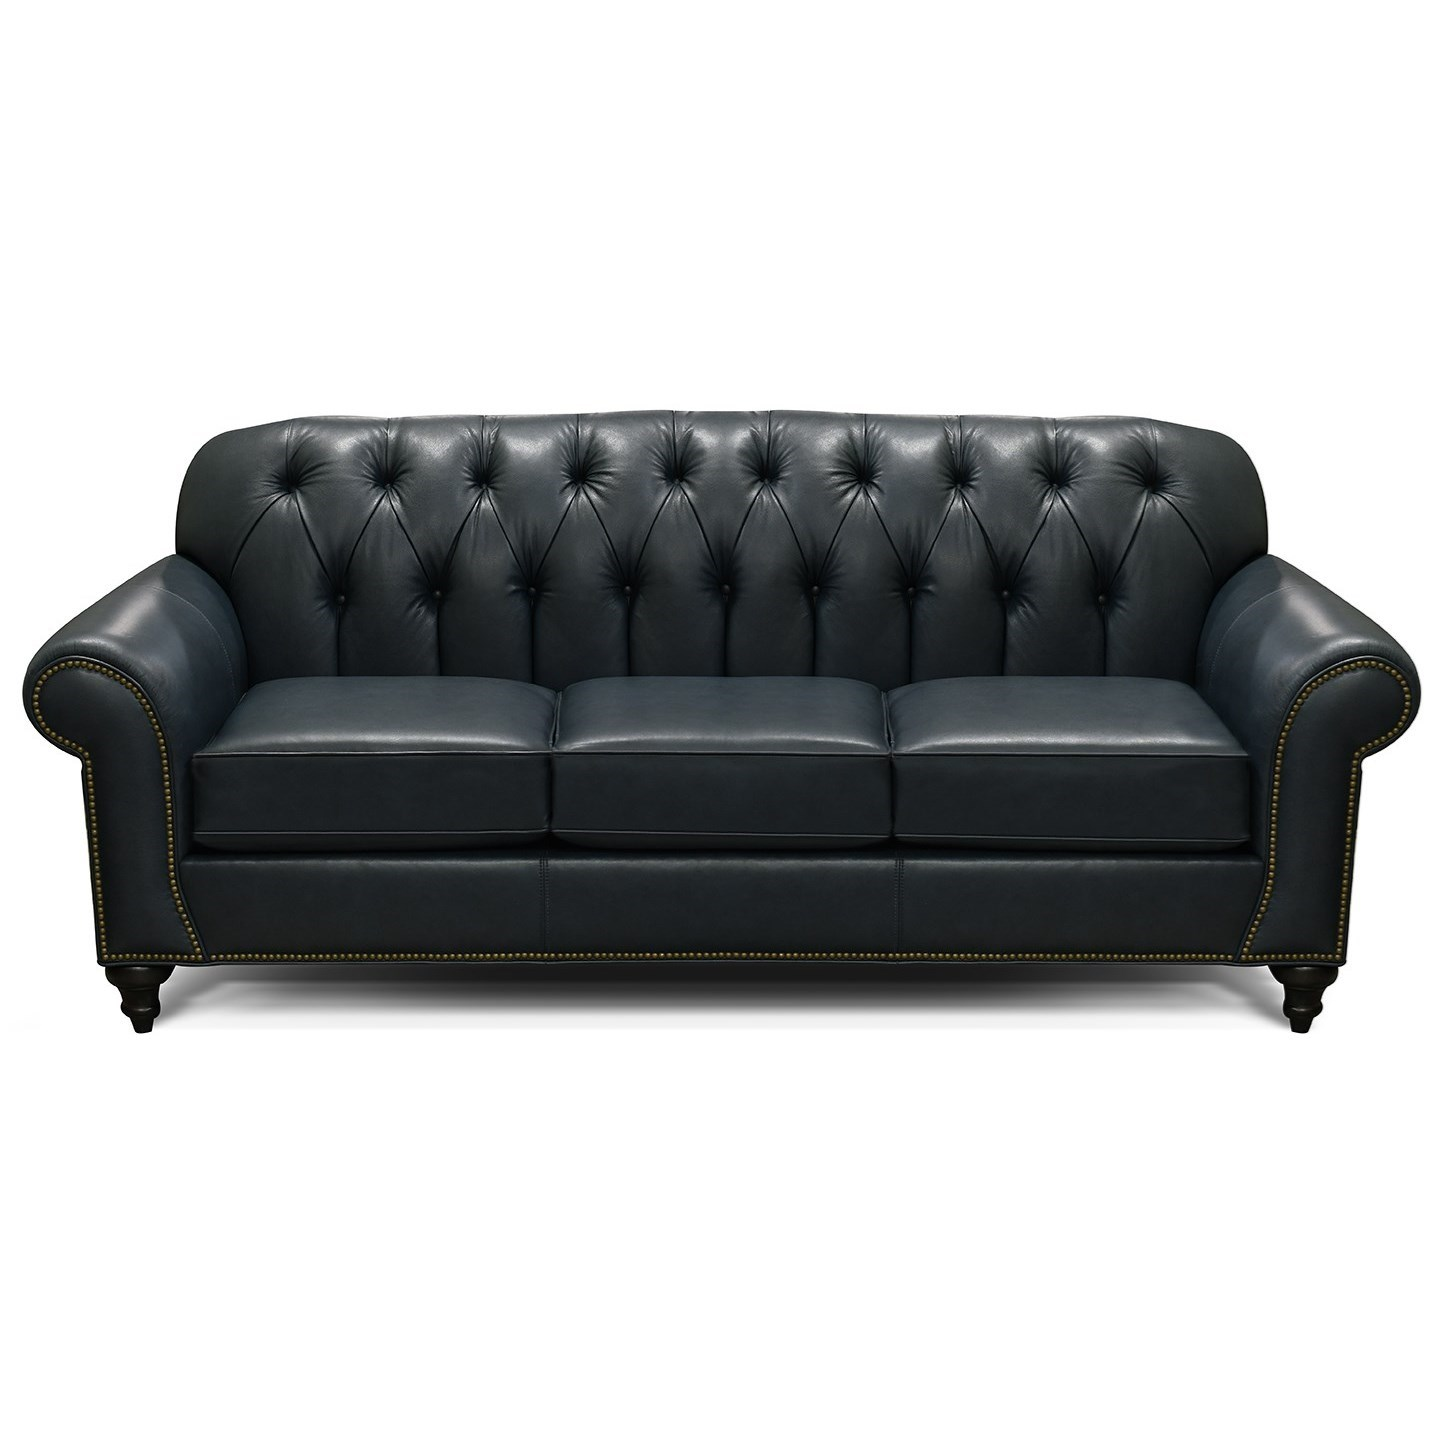 V8N0 Sofa by Alexvale at Northeast Factory Direct